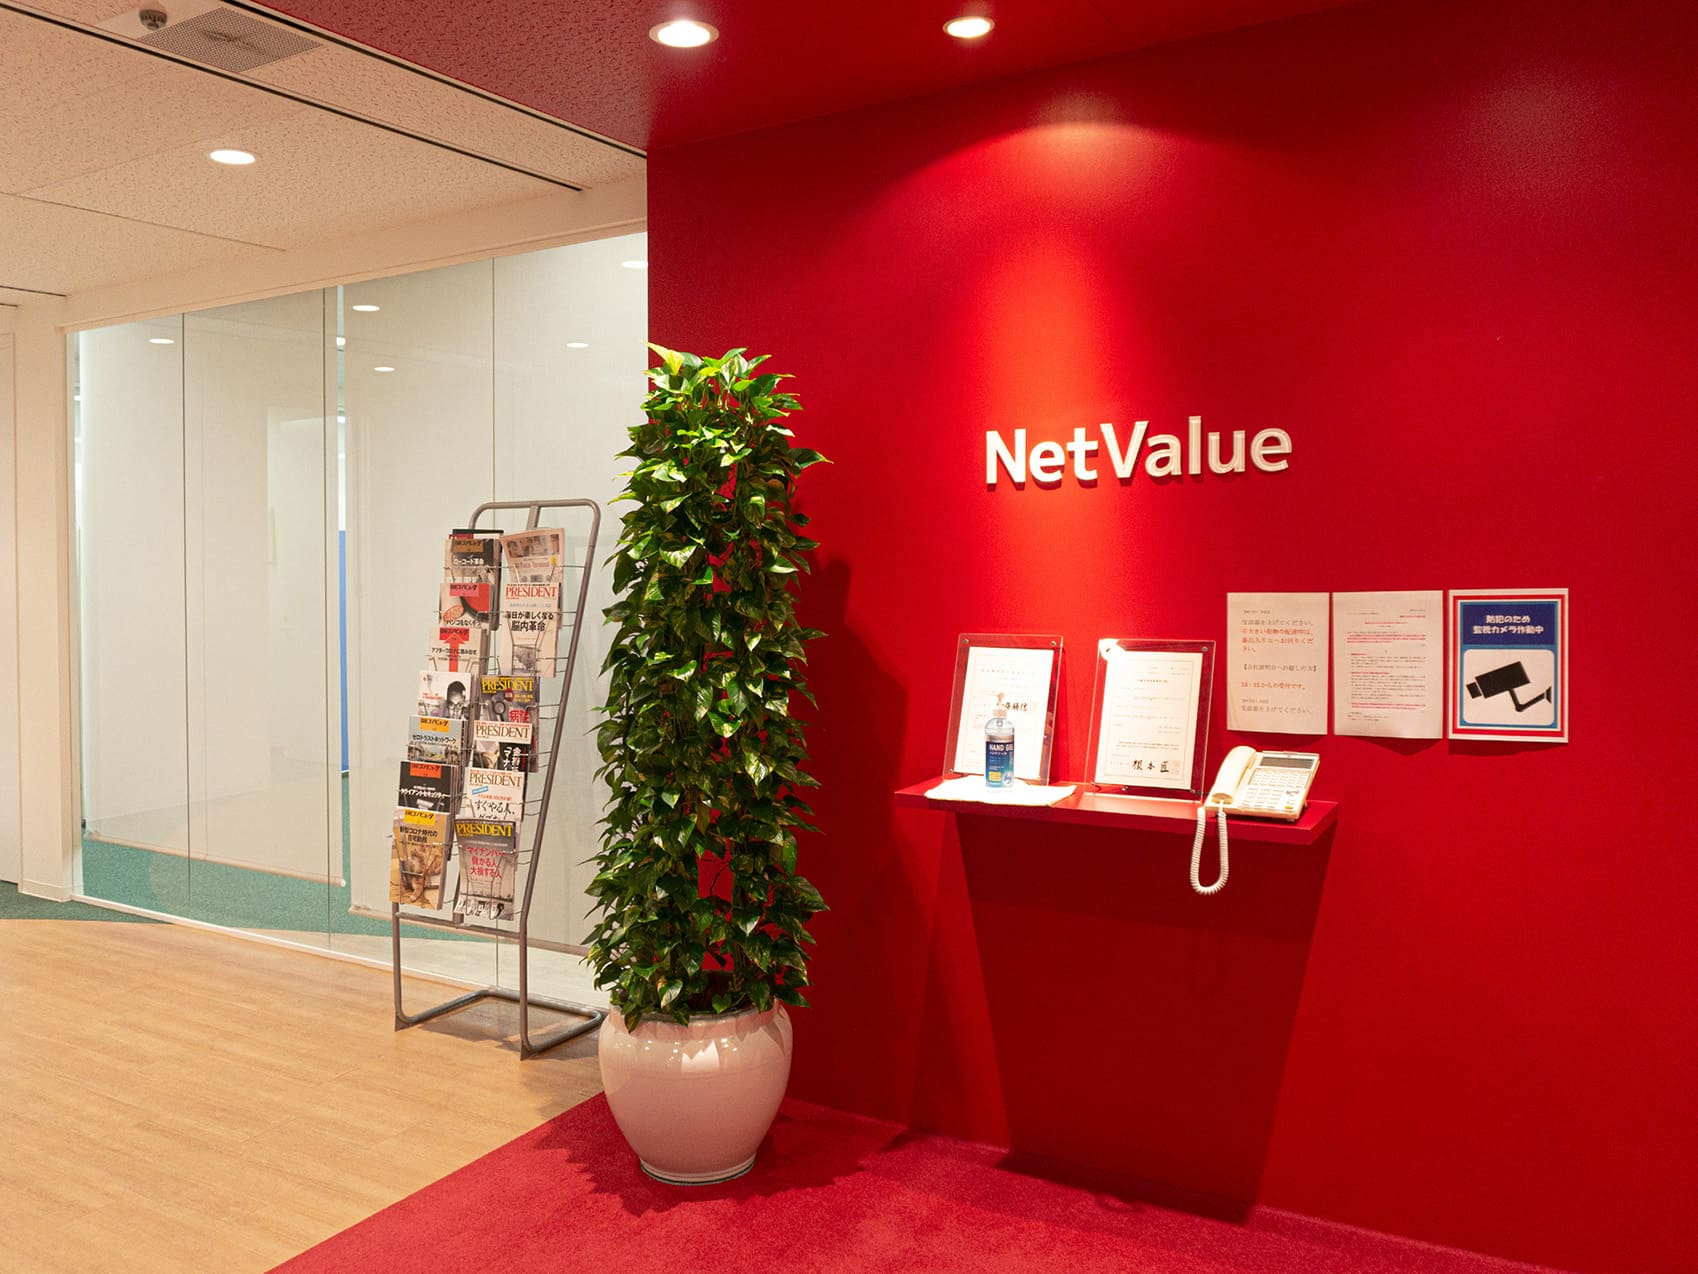 NetValue